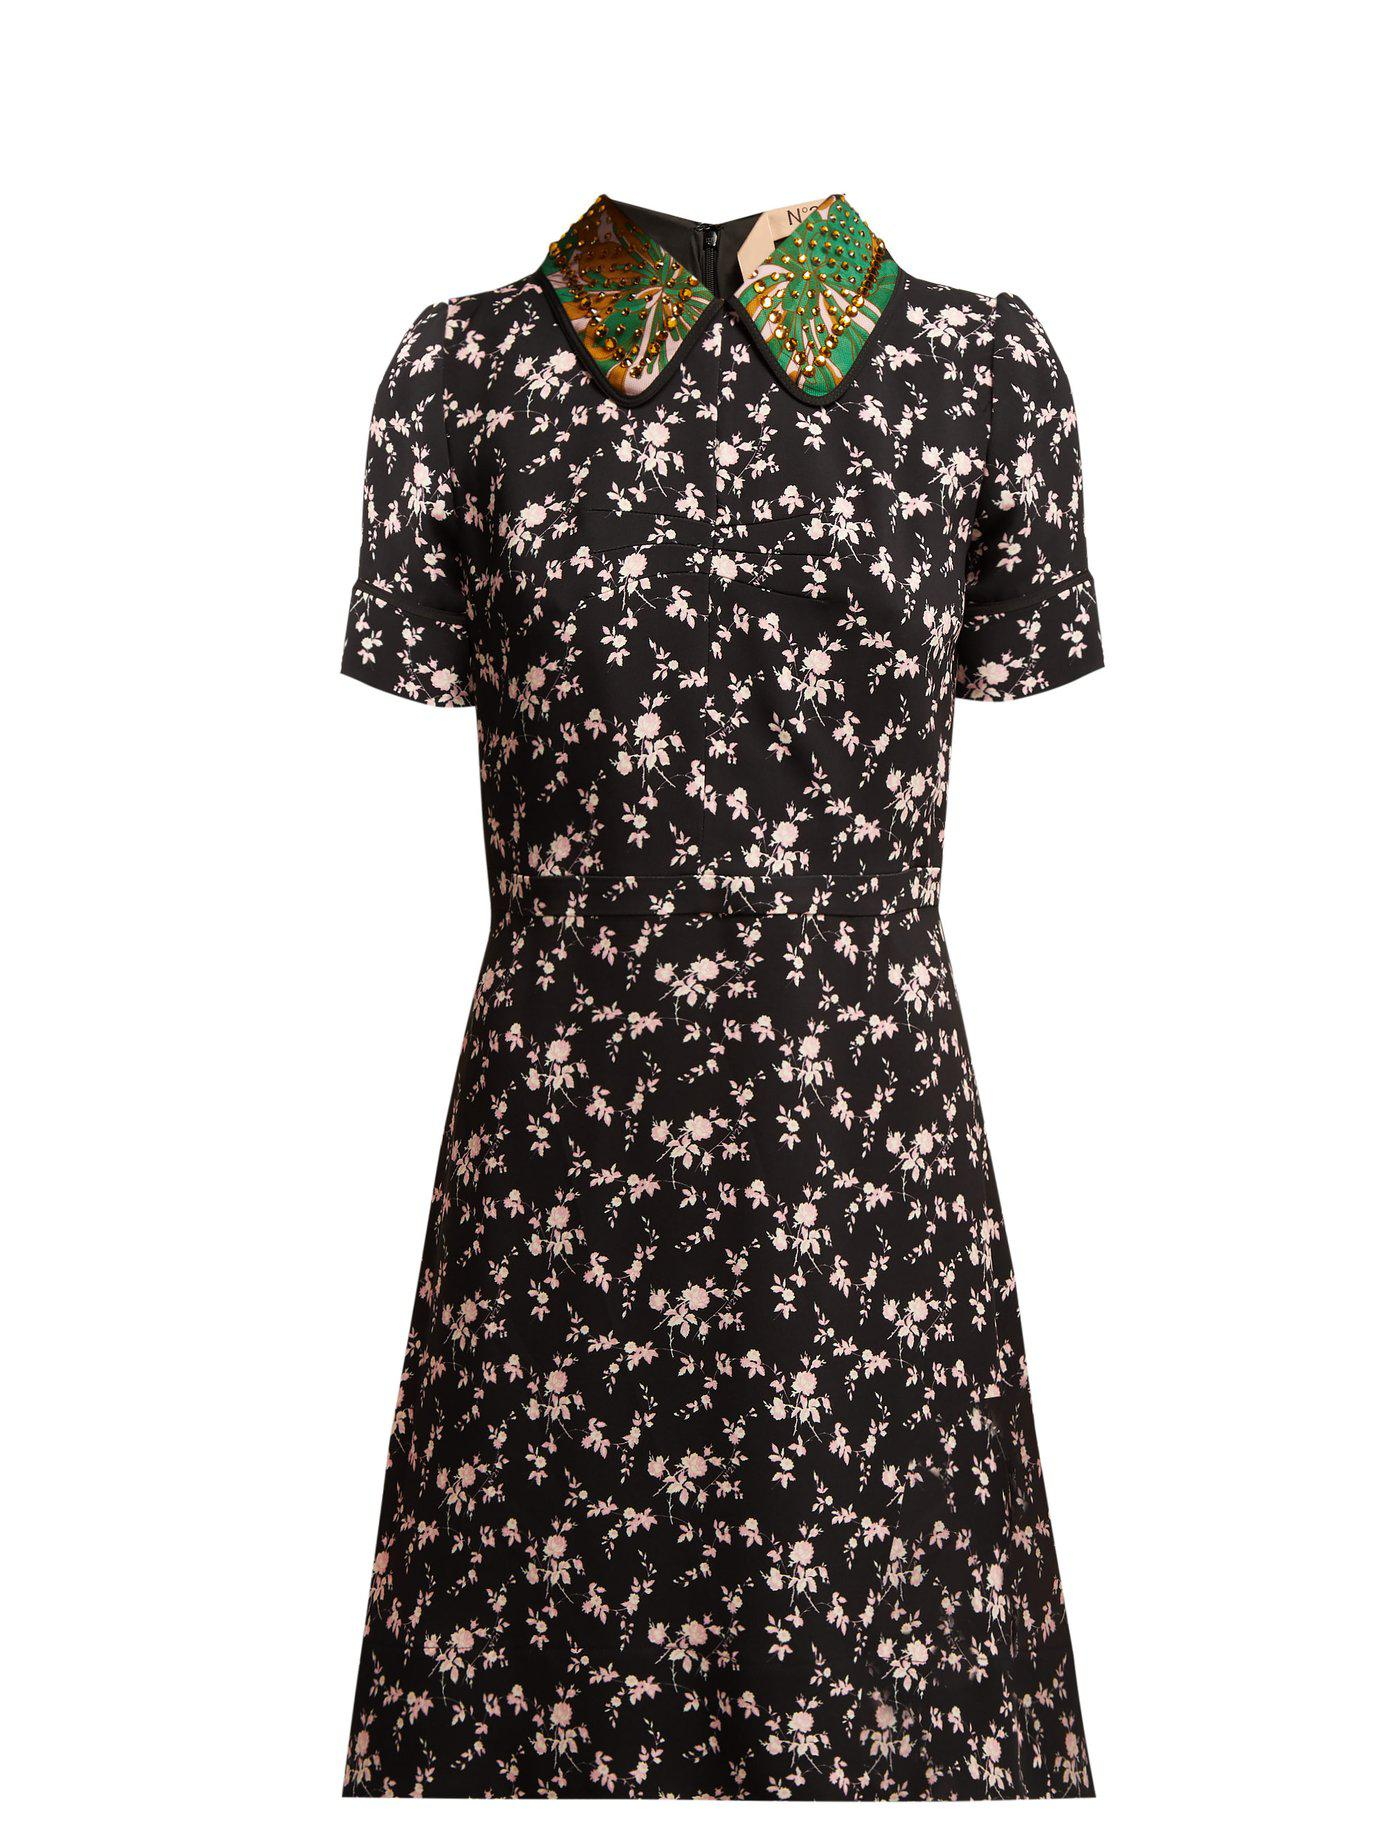 1c1e3a9a8c12 n21-black-multi-Stampa-Floral-Print-Dress.jpeg